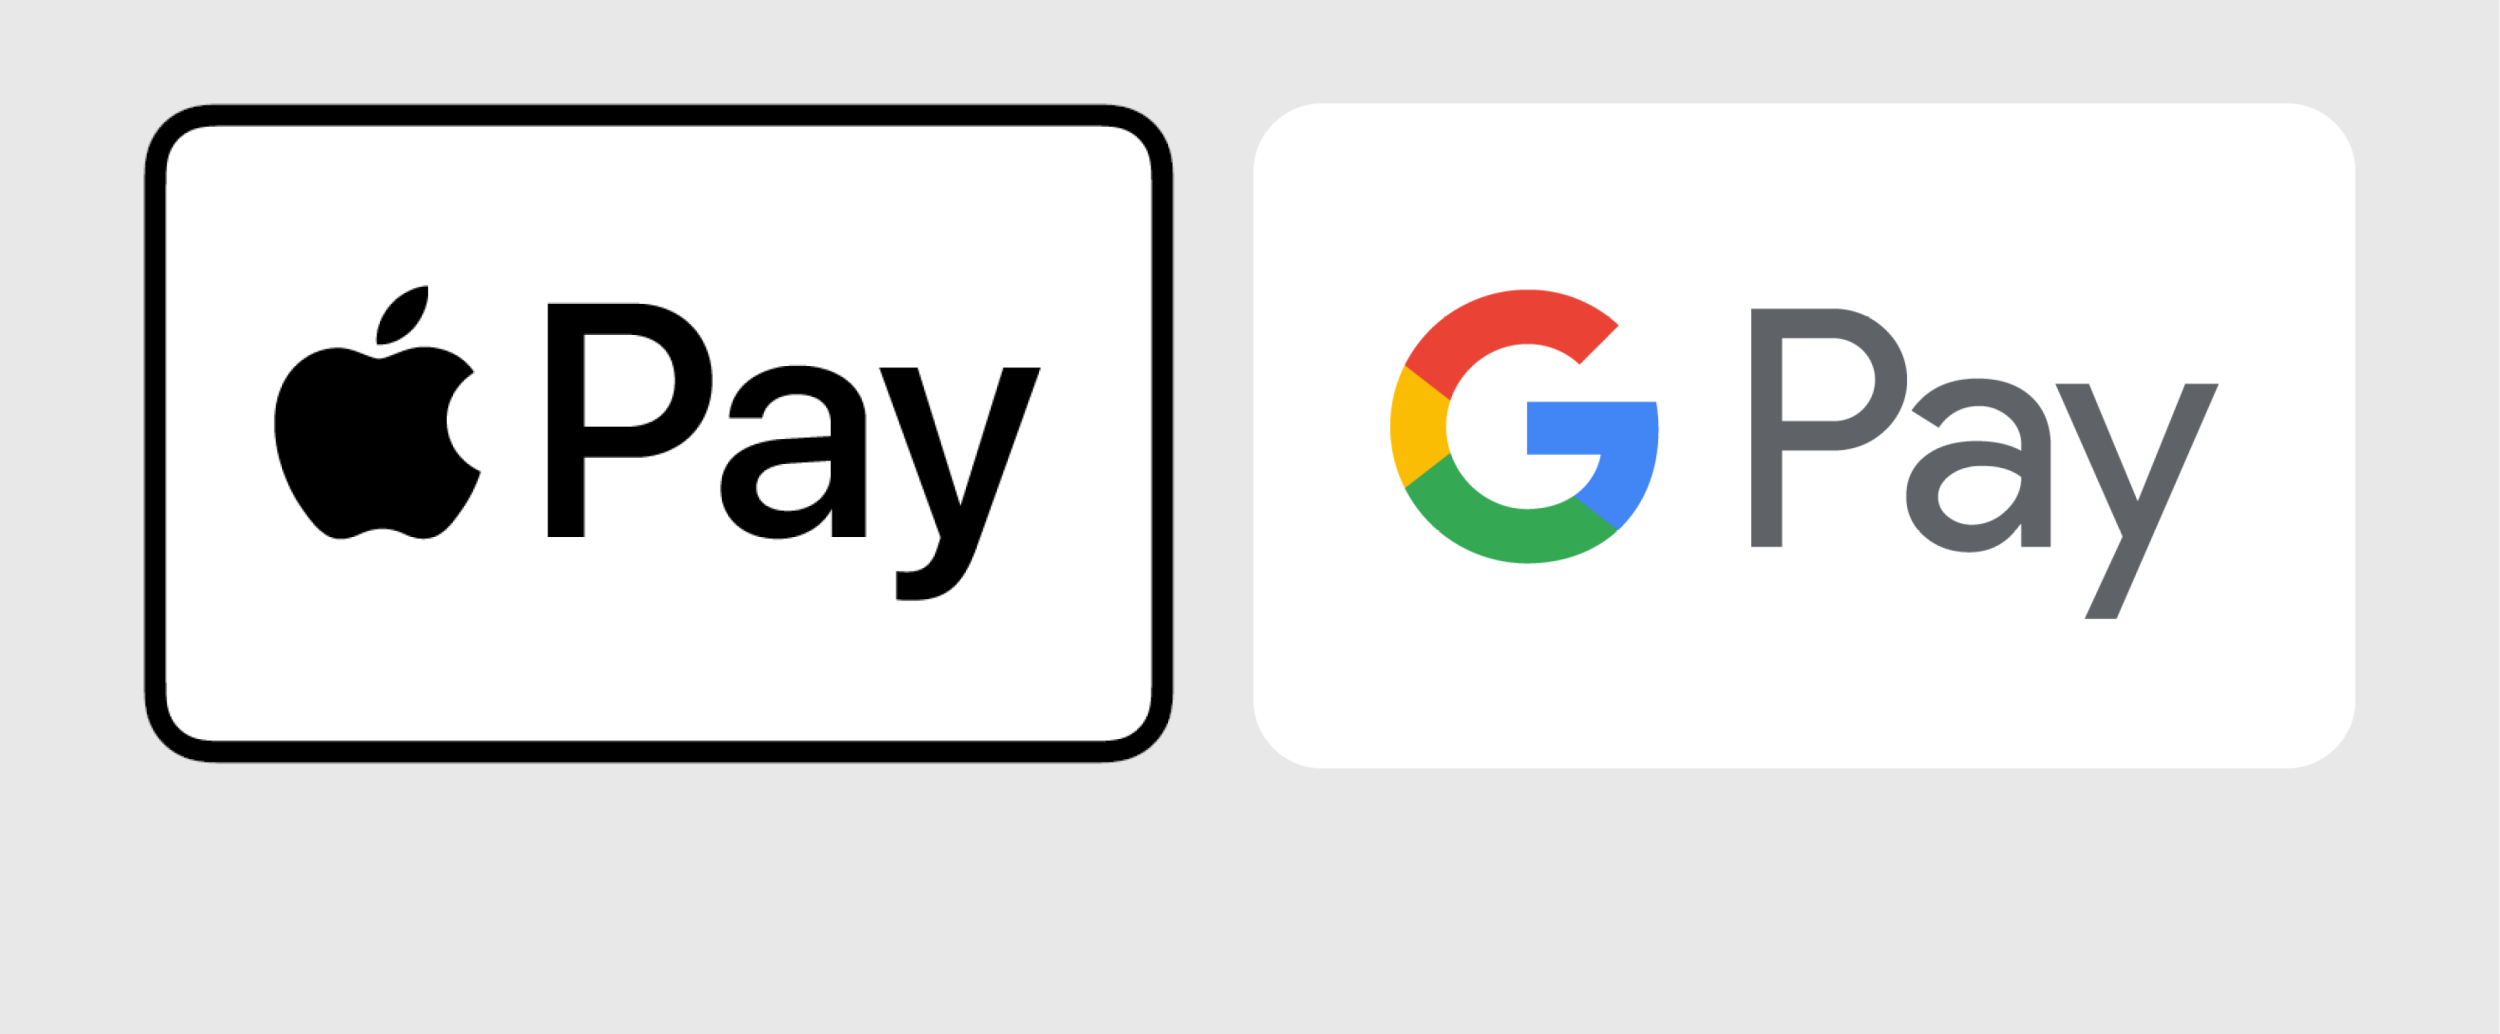 Apple Pay and Google Pay logos